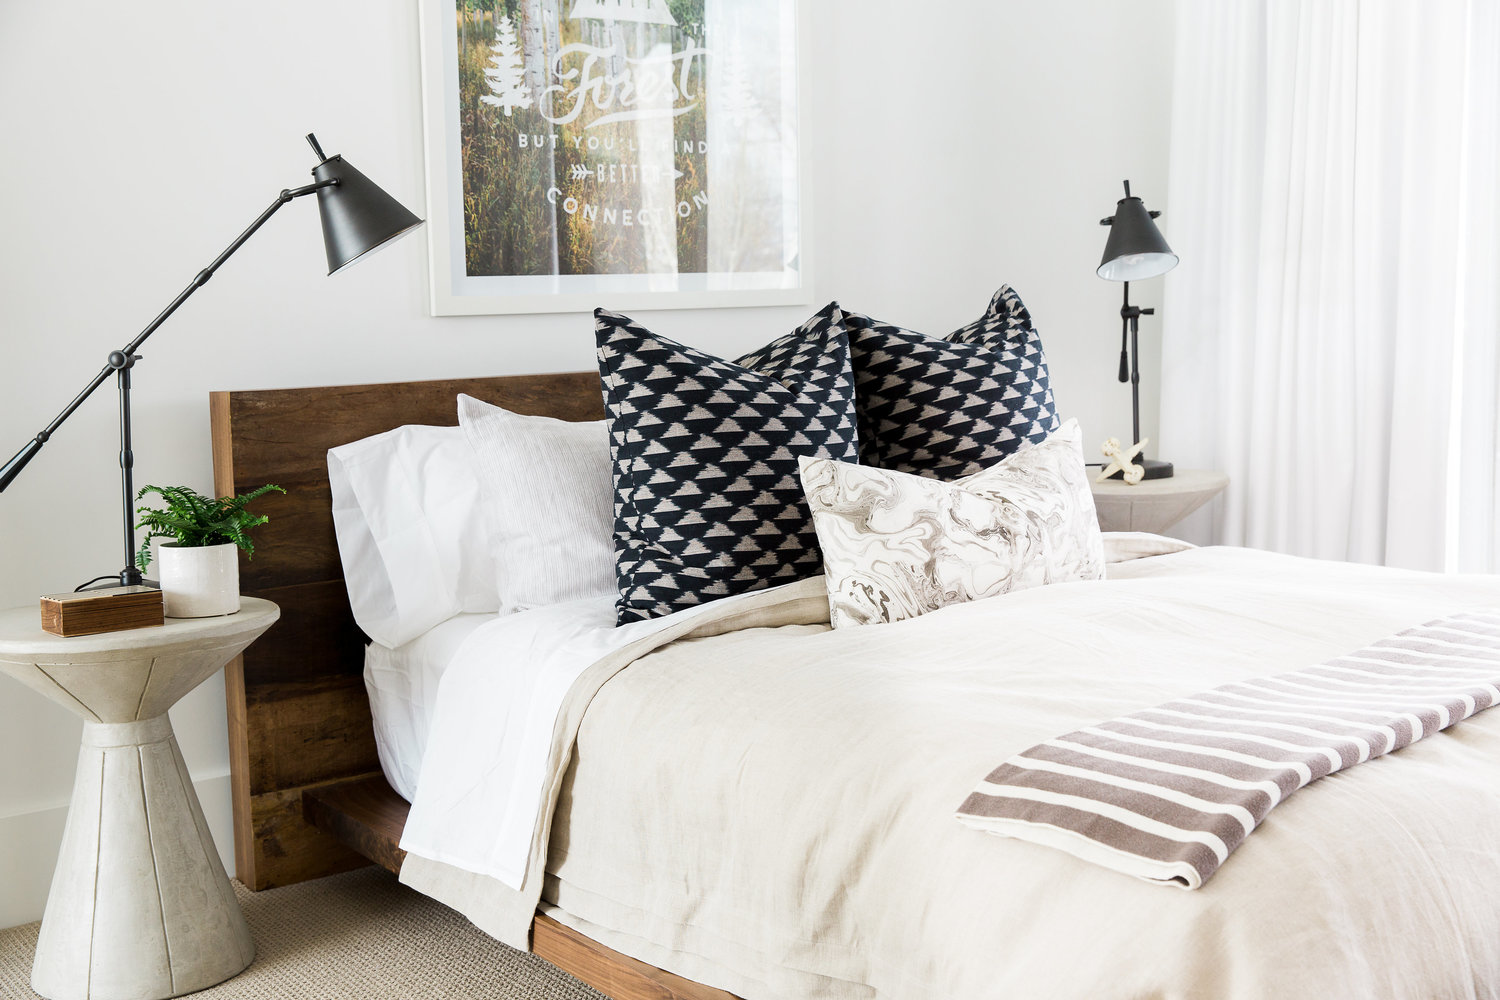 White bed with wooden headboard